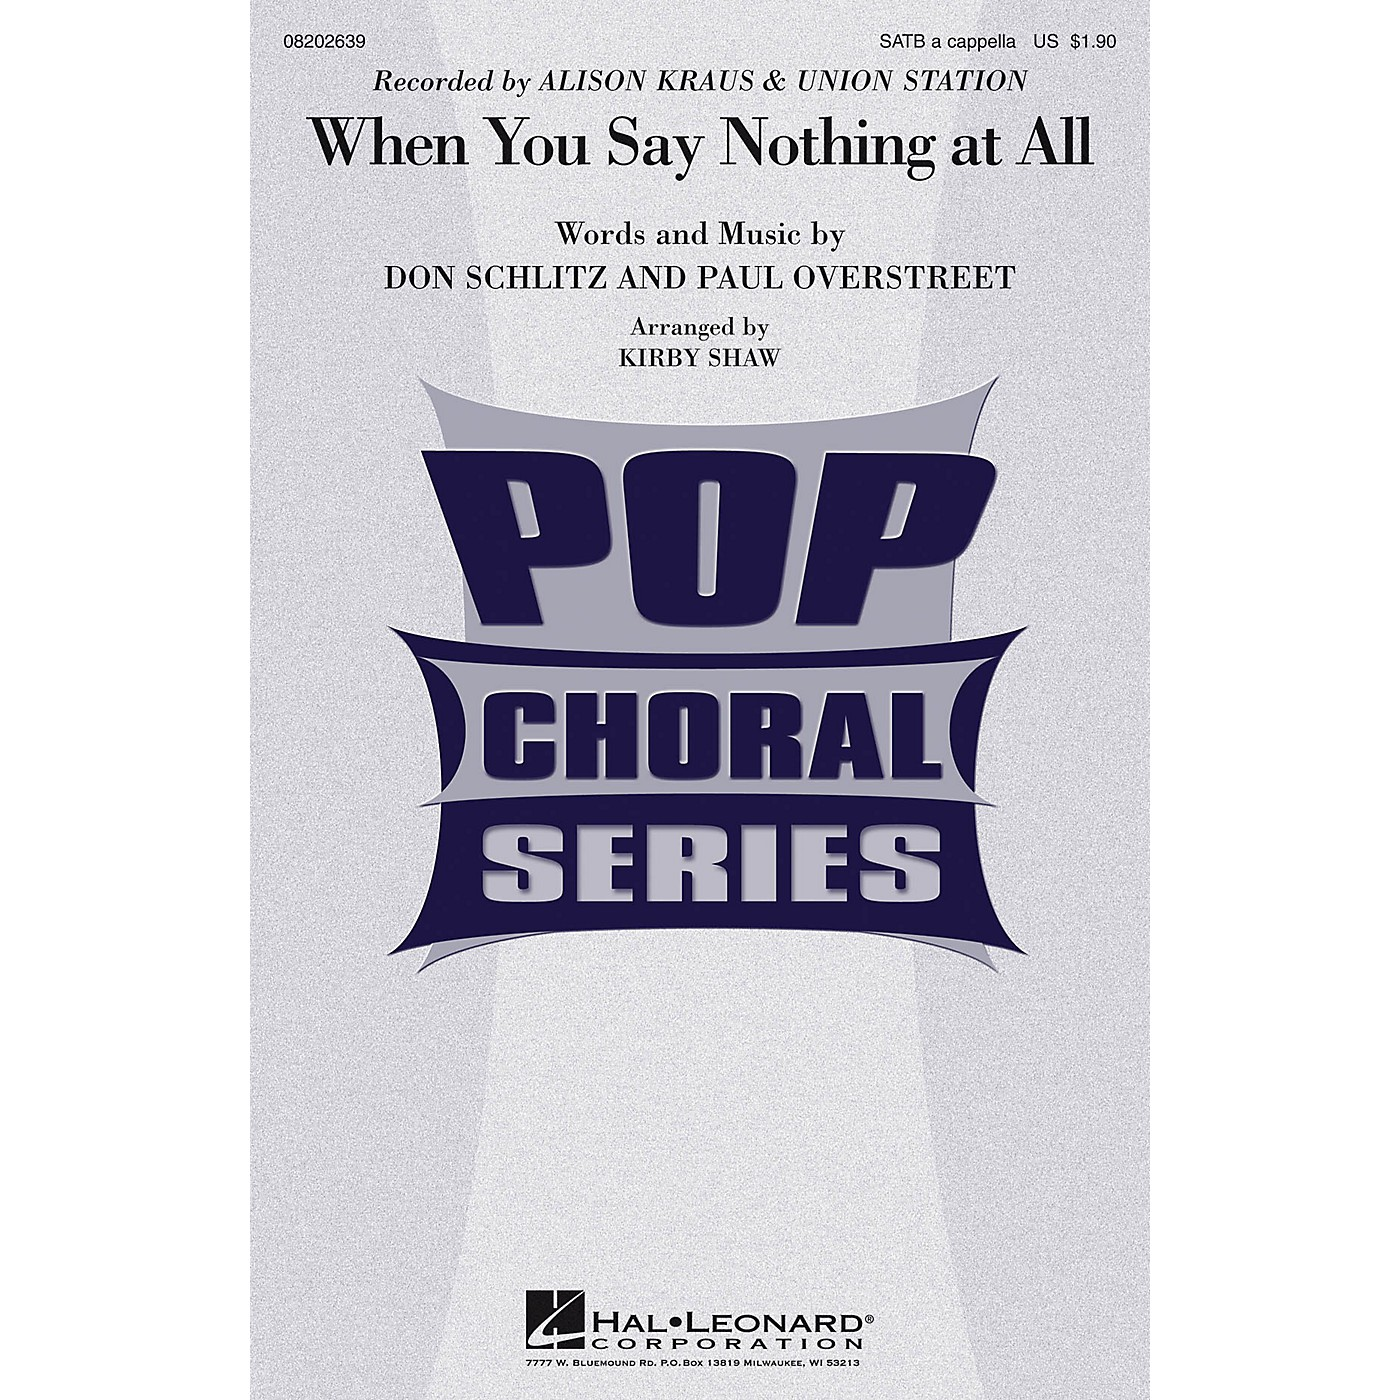 Hal Leonard When You Say Nothing at All SATB a cappella by Alison Krauss arranged by Kirby Shaw thumbnail